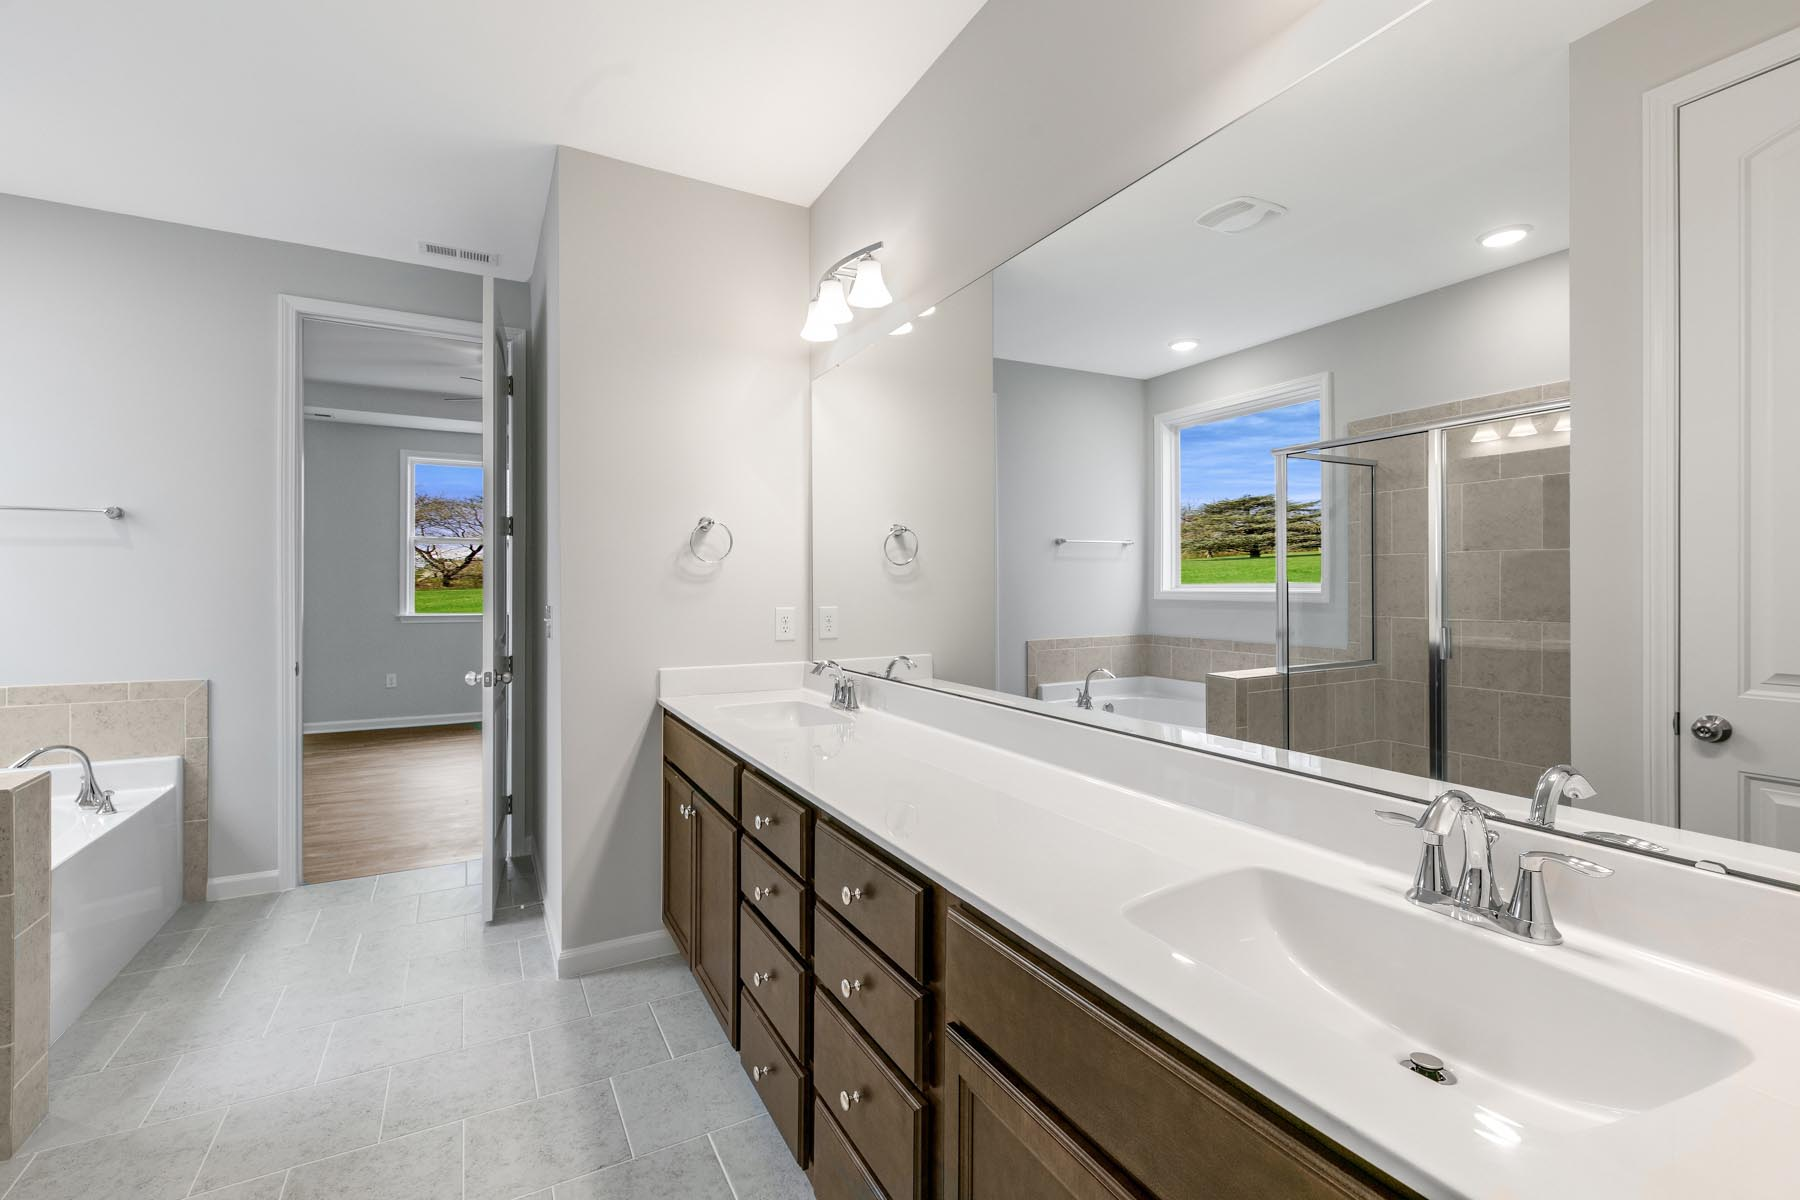 Pierce Plan Bath at Bent Tree in Fuquay-Varina North Carolina by Mattamy Homes